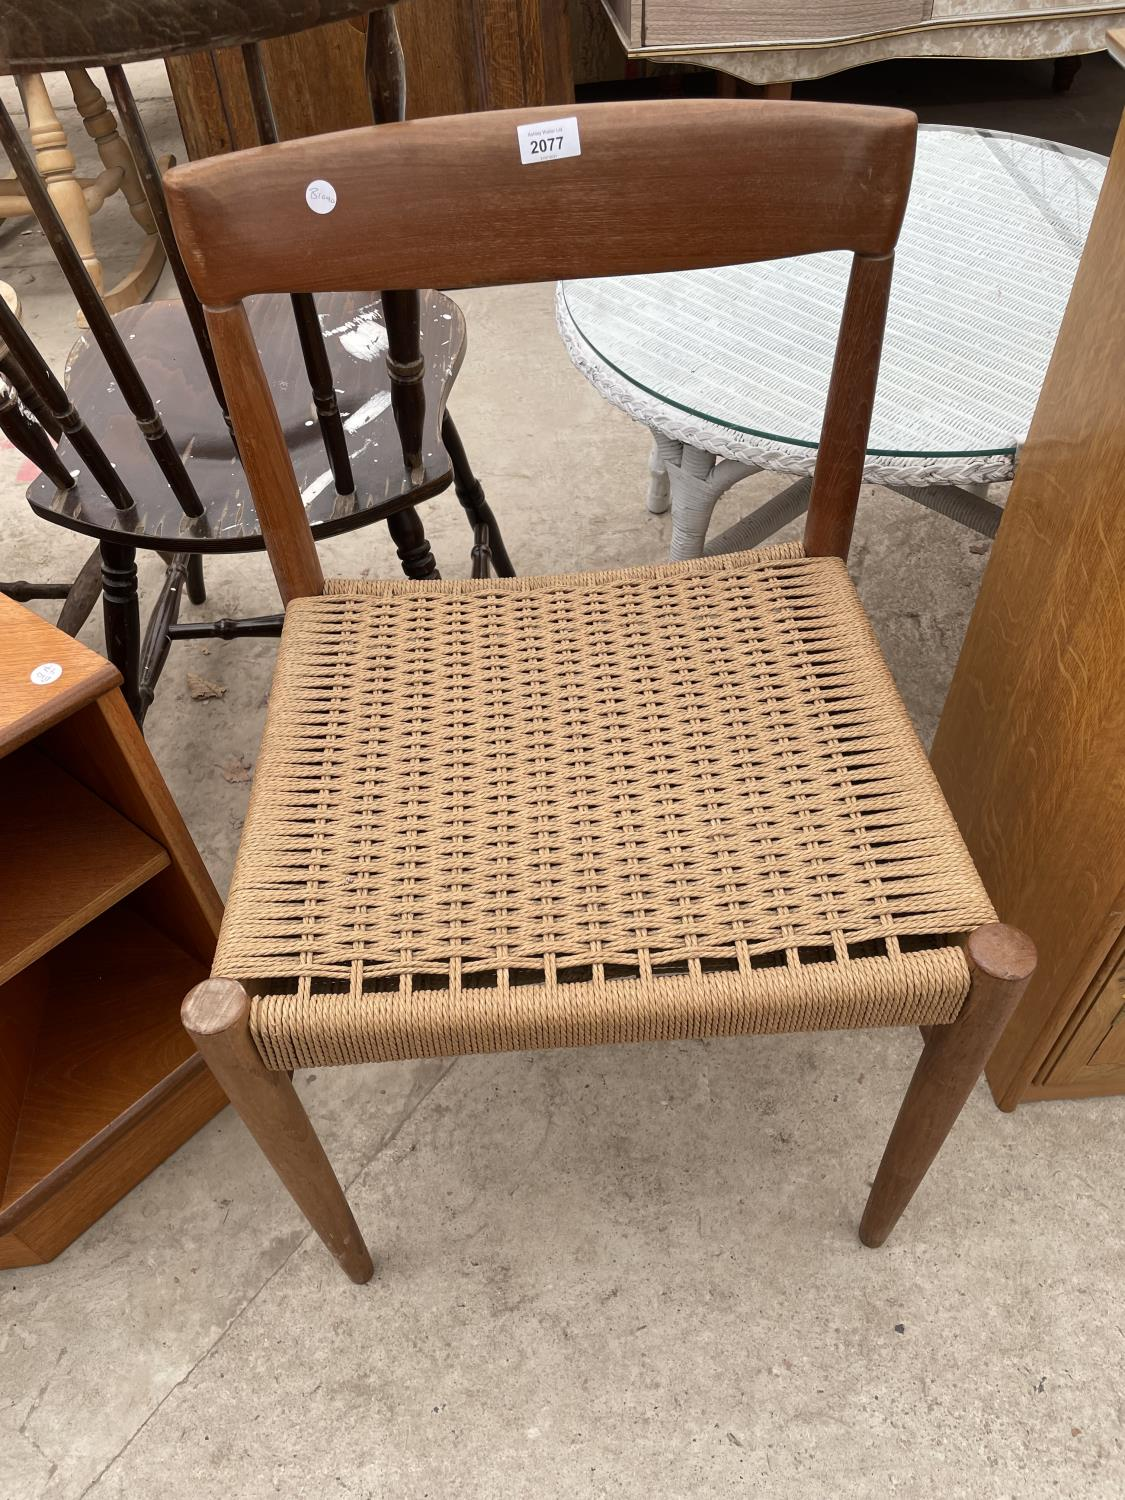 A RETRO TEAK SINGLE DINING CHAIR WITH RATTAN SEAT